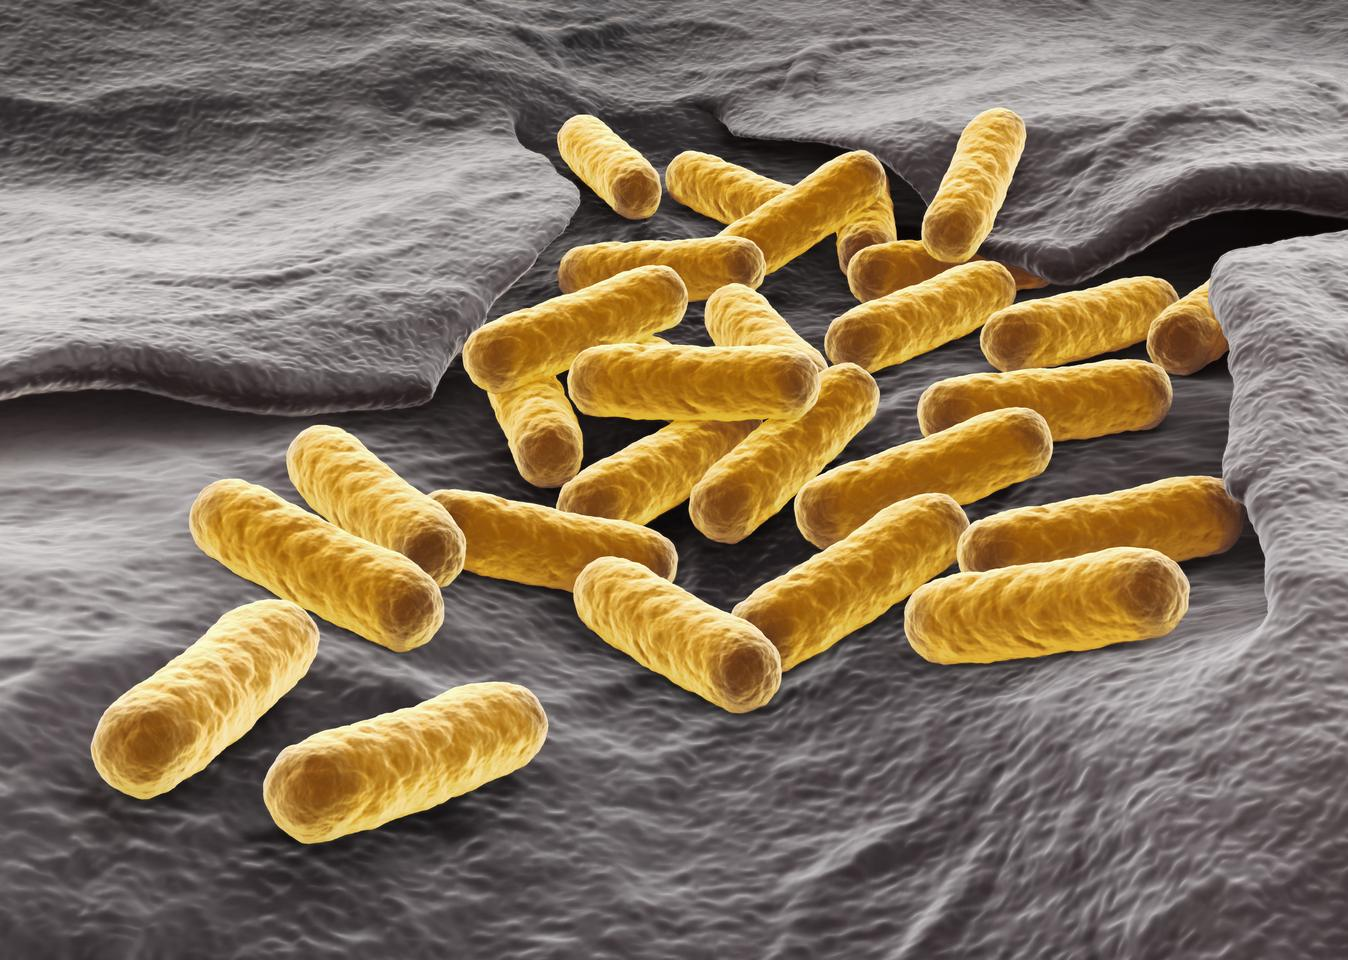 Researchers have developed E. coli bacteria that can't survive without specially-supplied synthetic amino acids (Image: Shutterstock)